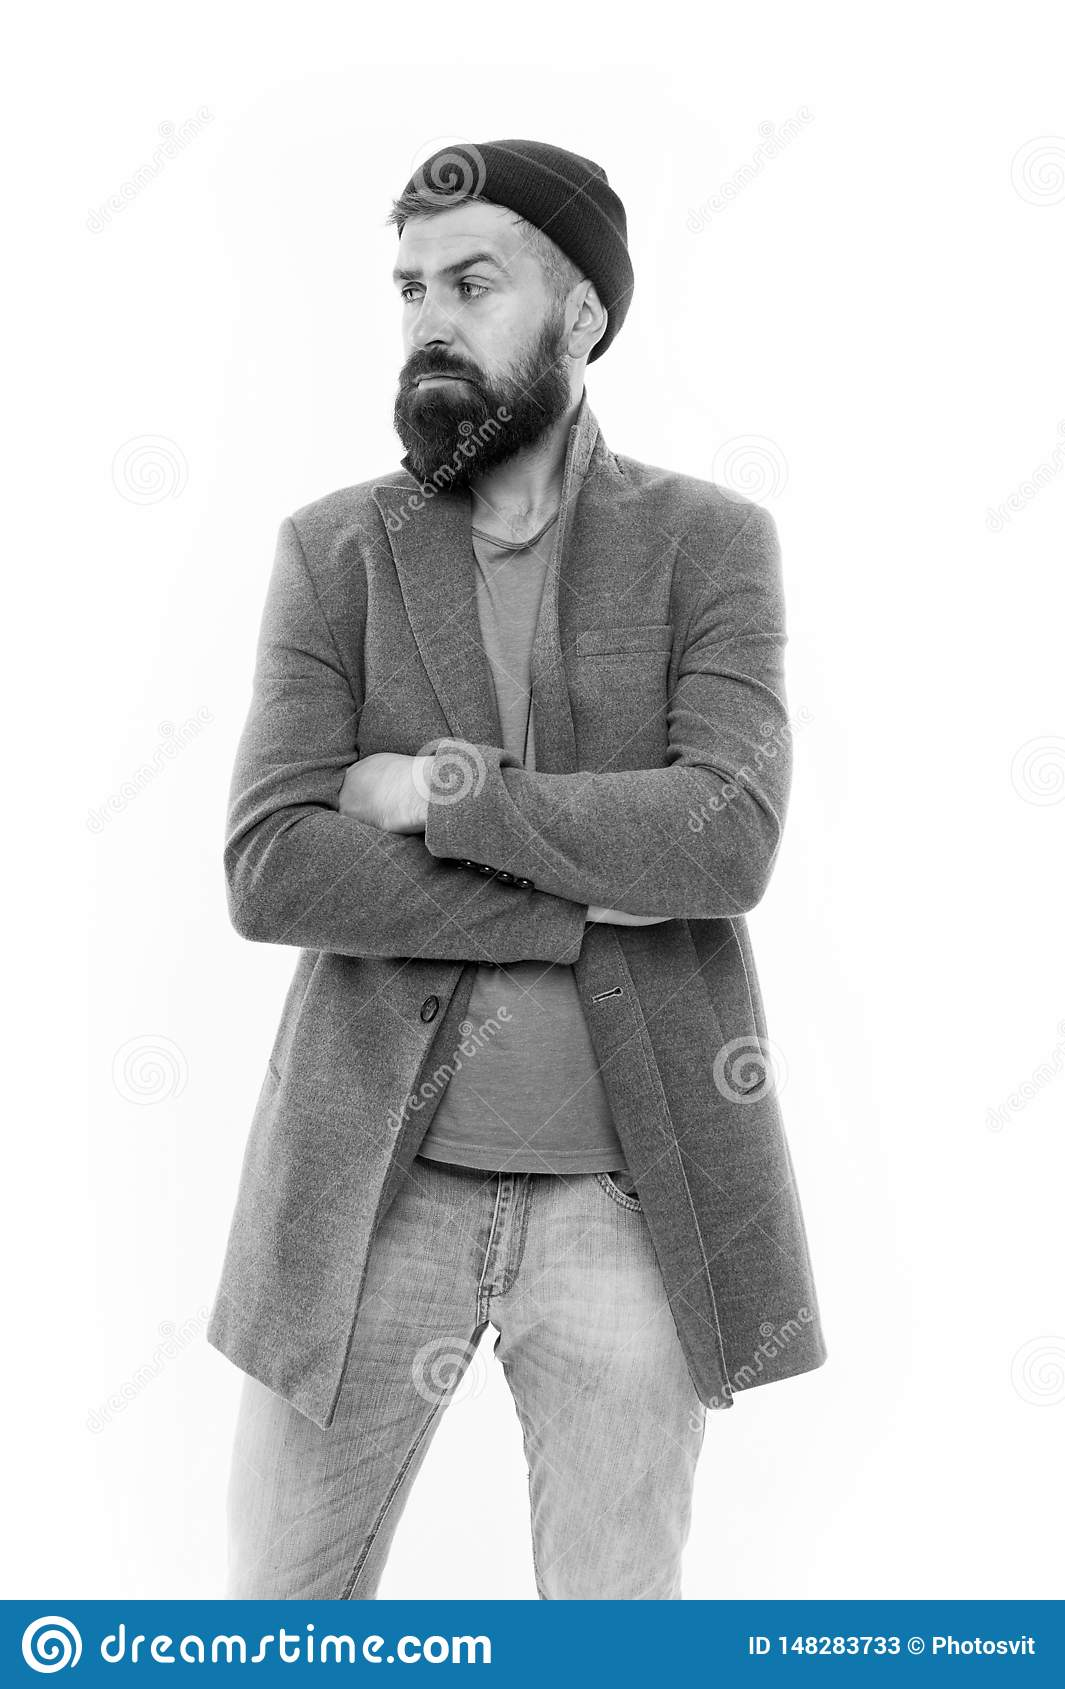 Menswear and fashion concept. Man bearded hipster stylish fashionable coat and hat. Stylish outfit hat accessory. Pick